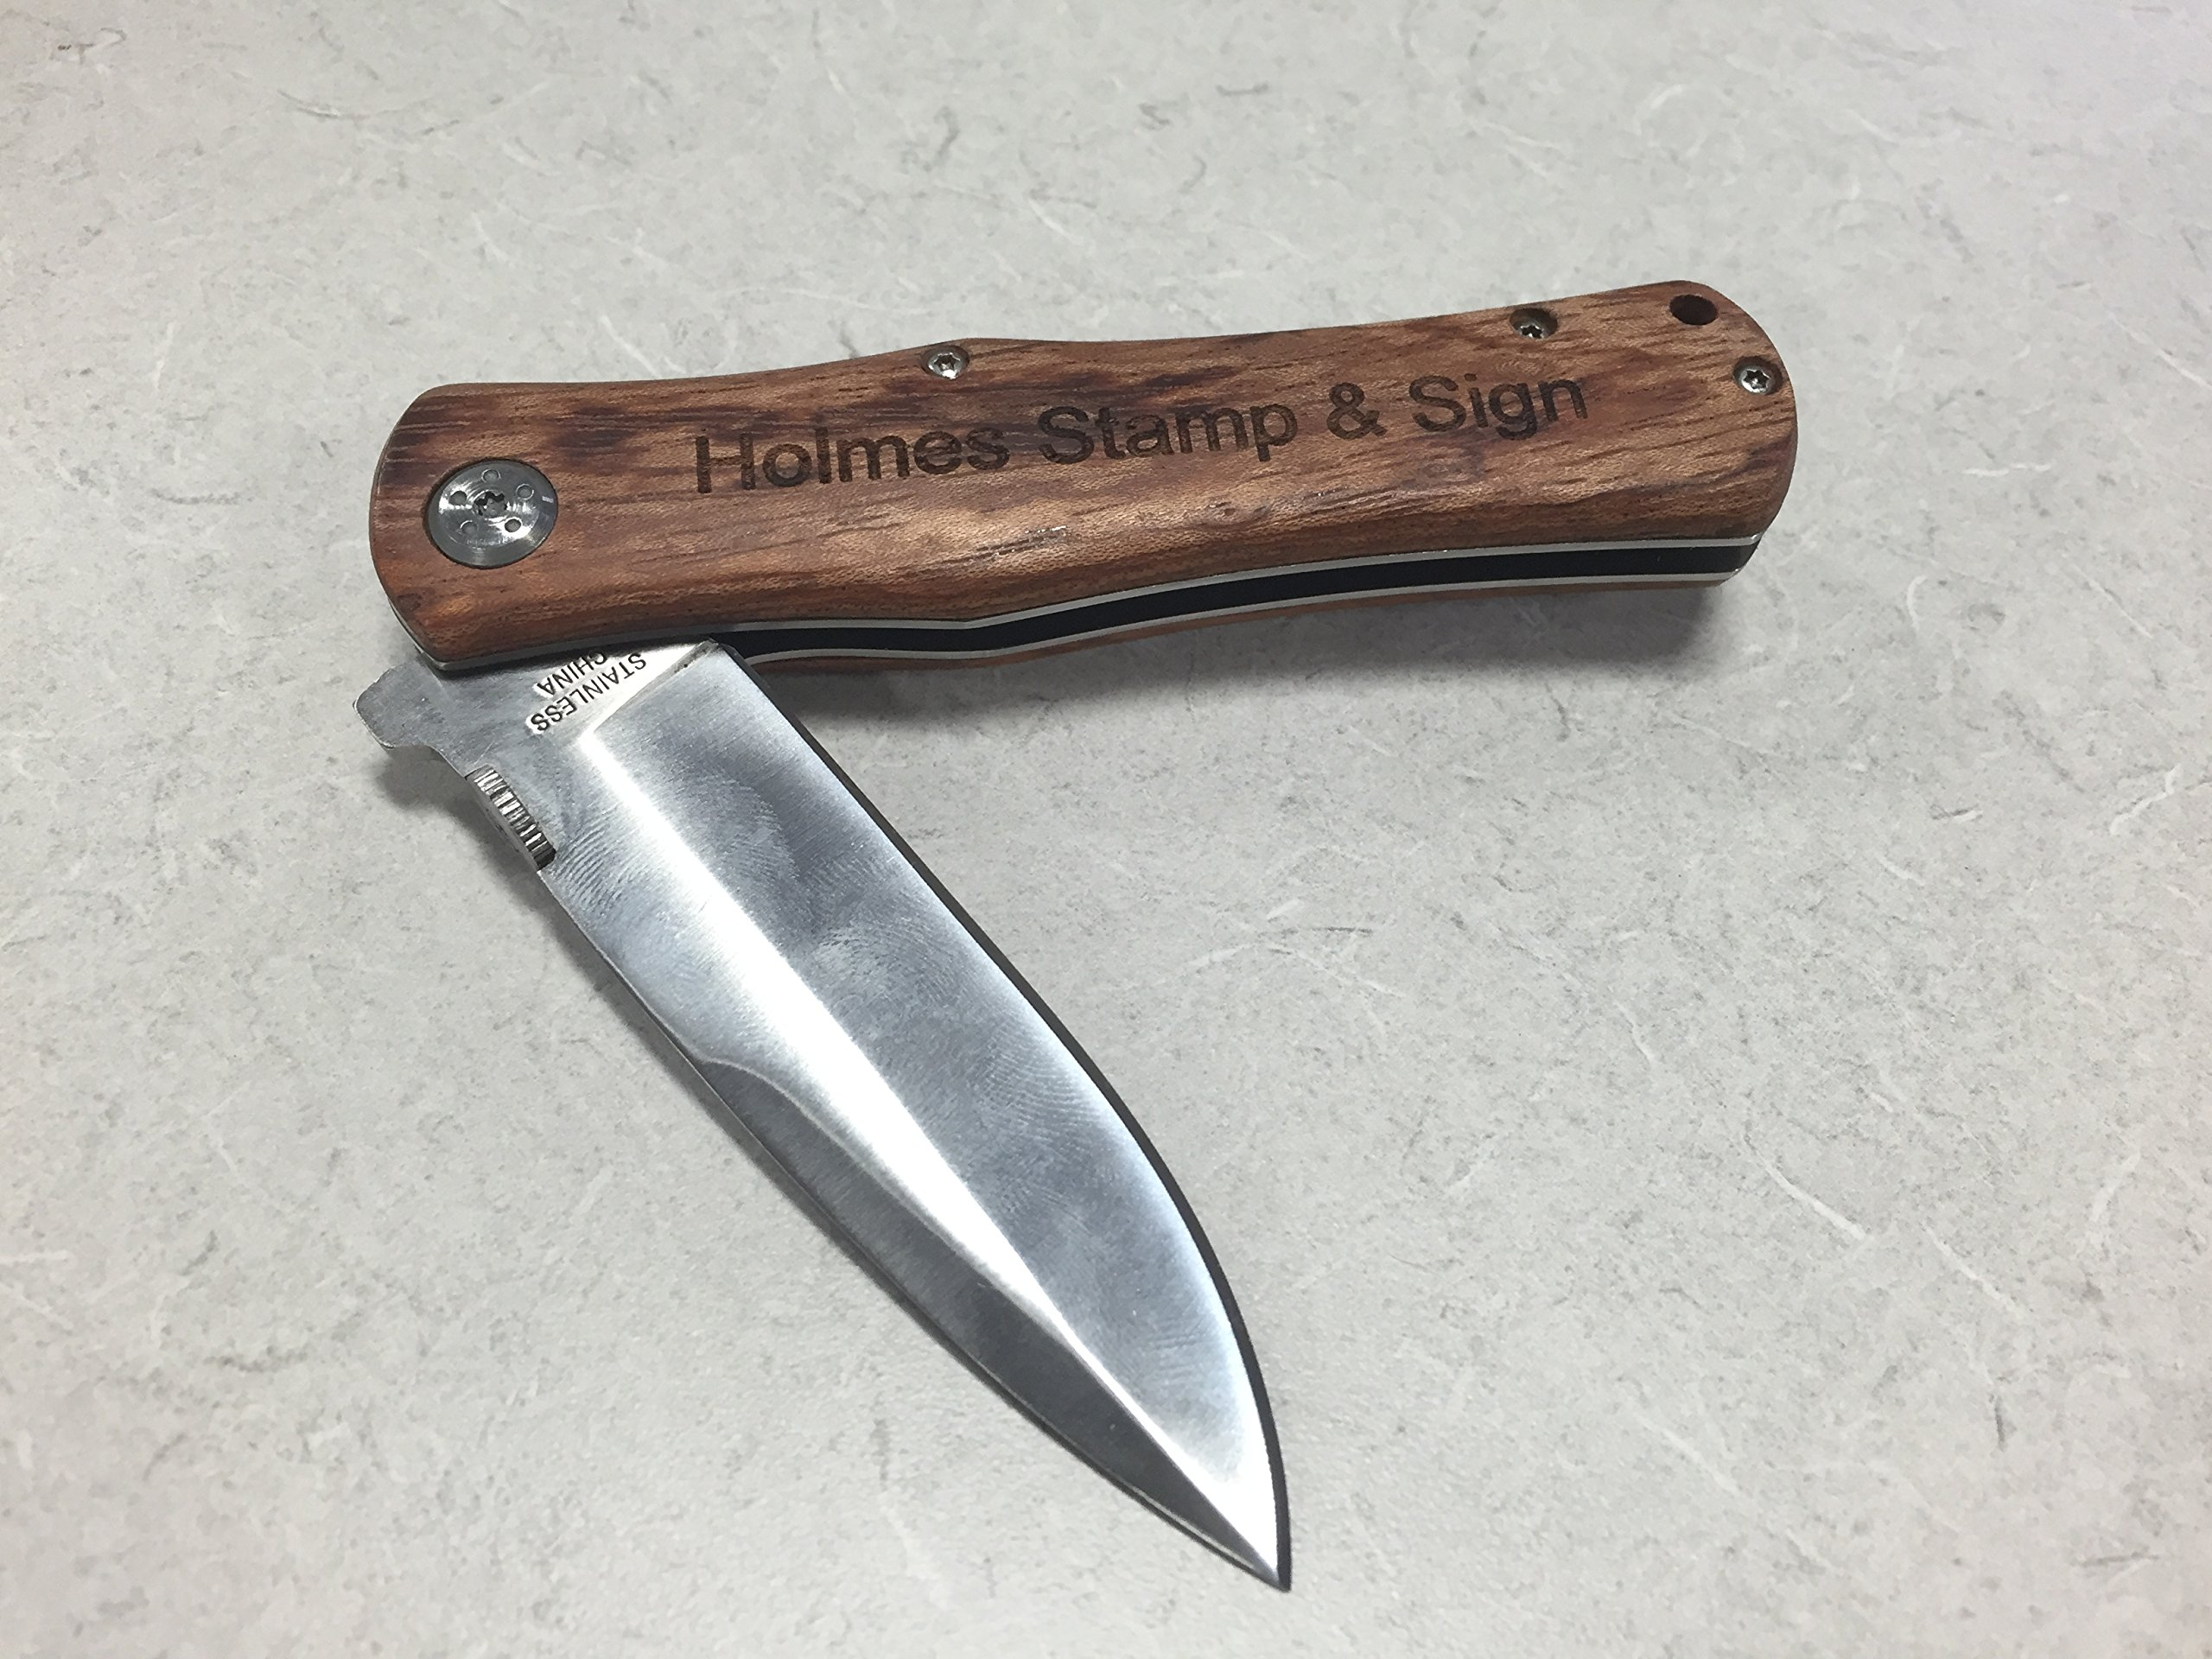 Customized Pocket Knife | Engraved Hunting Knife | Custom Knife Gift |  3 5'' Inch Stainless Steel Blade | Engraved Wooden Handle